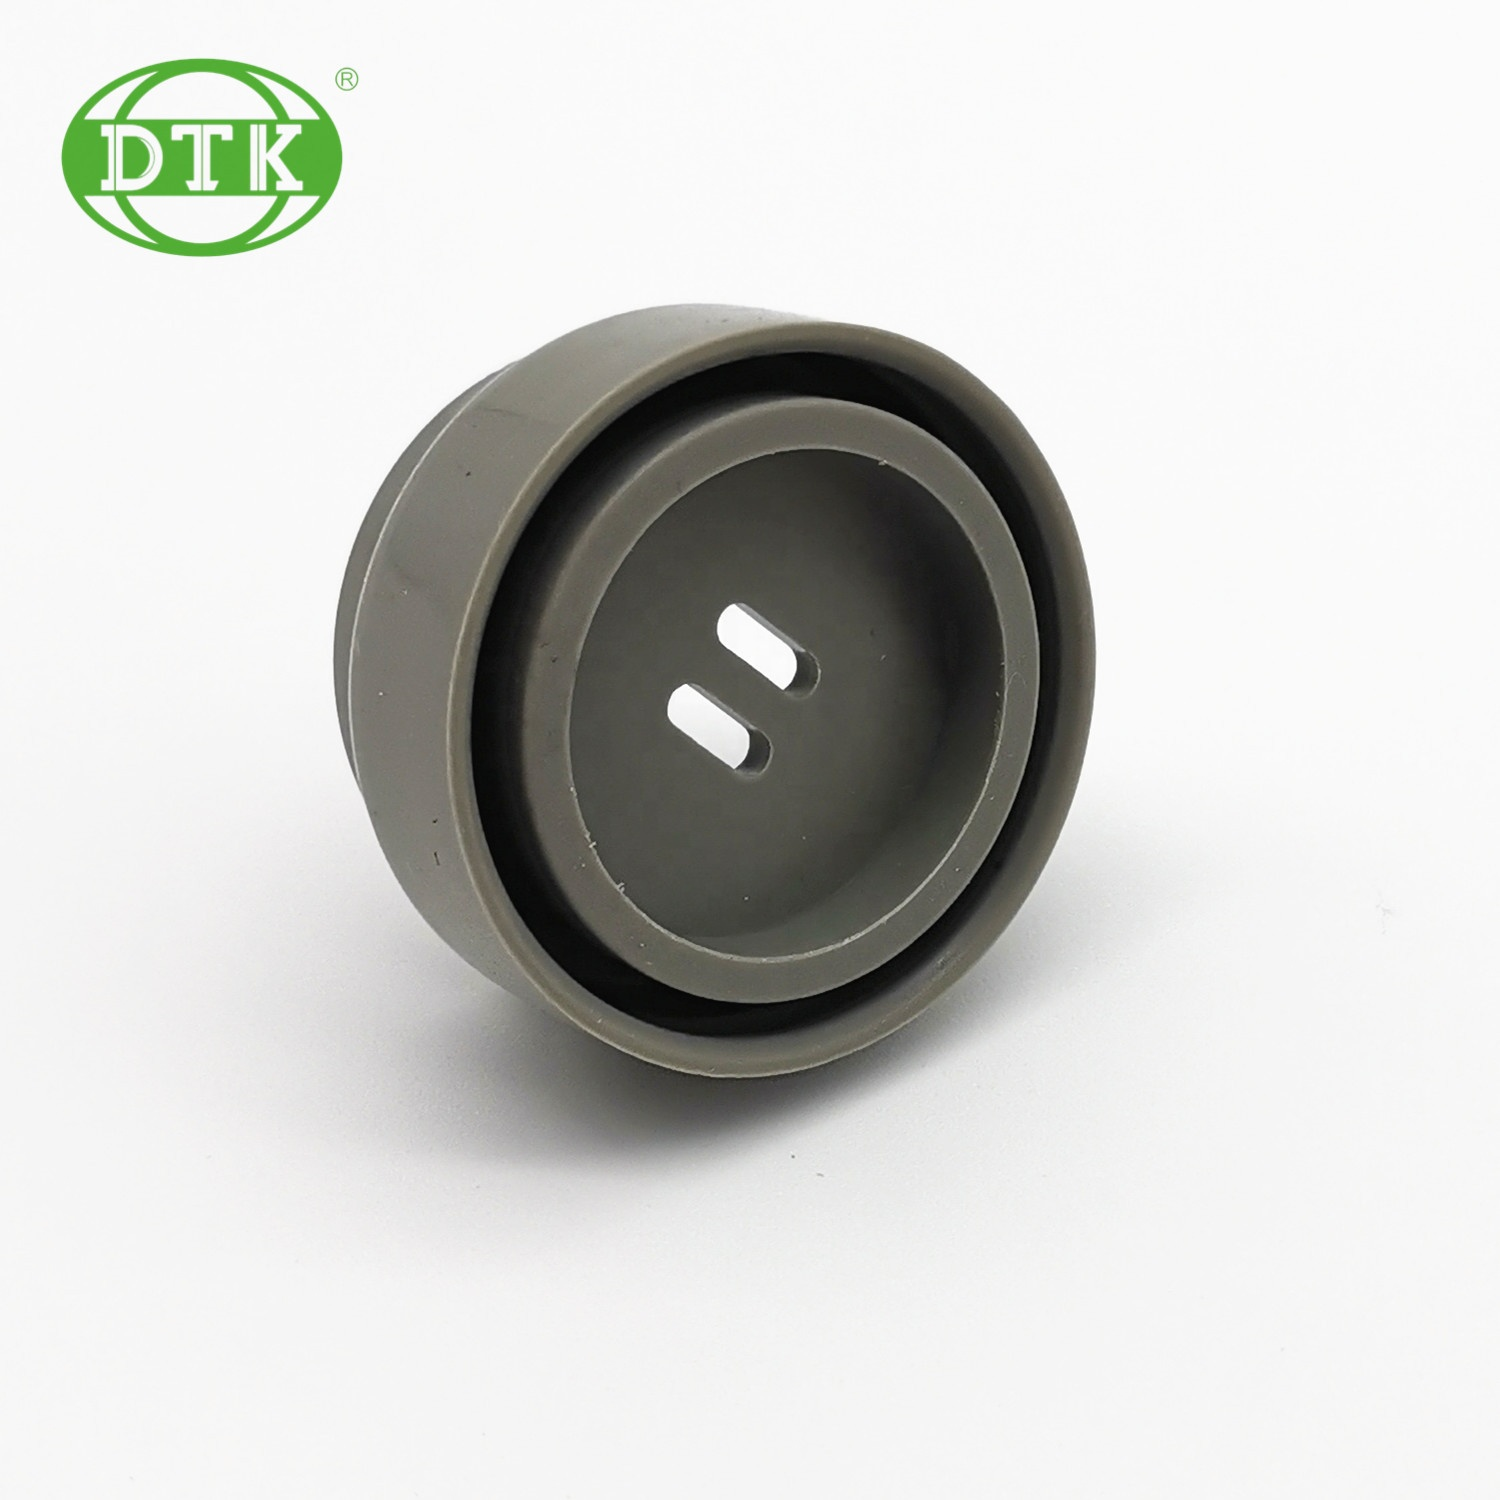 Make to Order Automotive Rubber Spare Sealing Parts